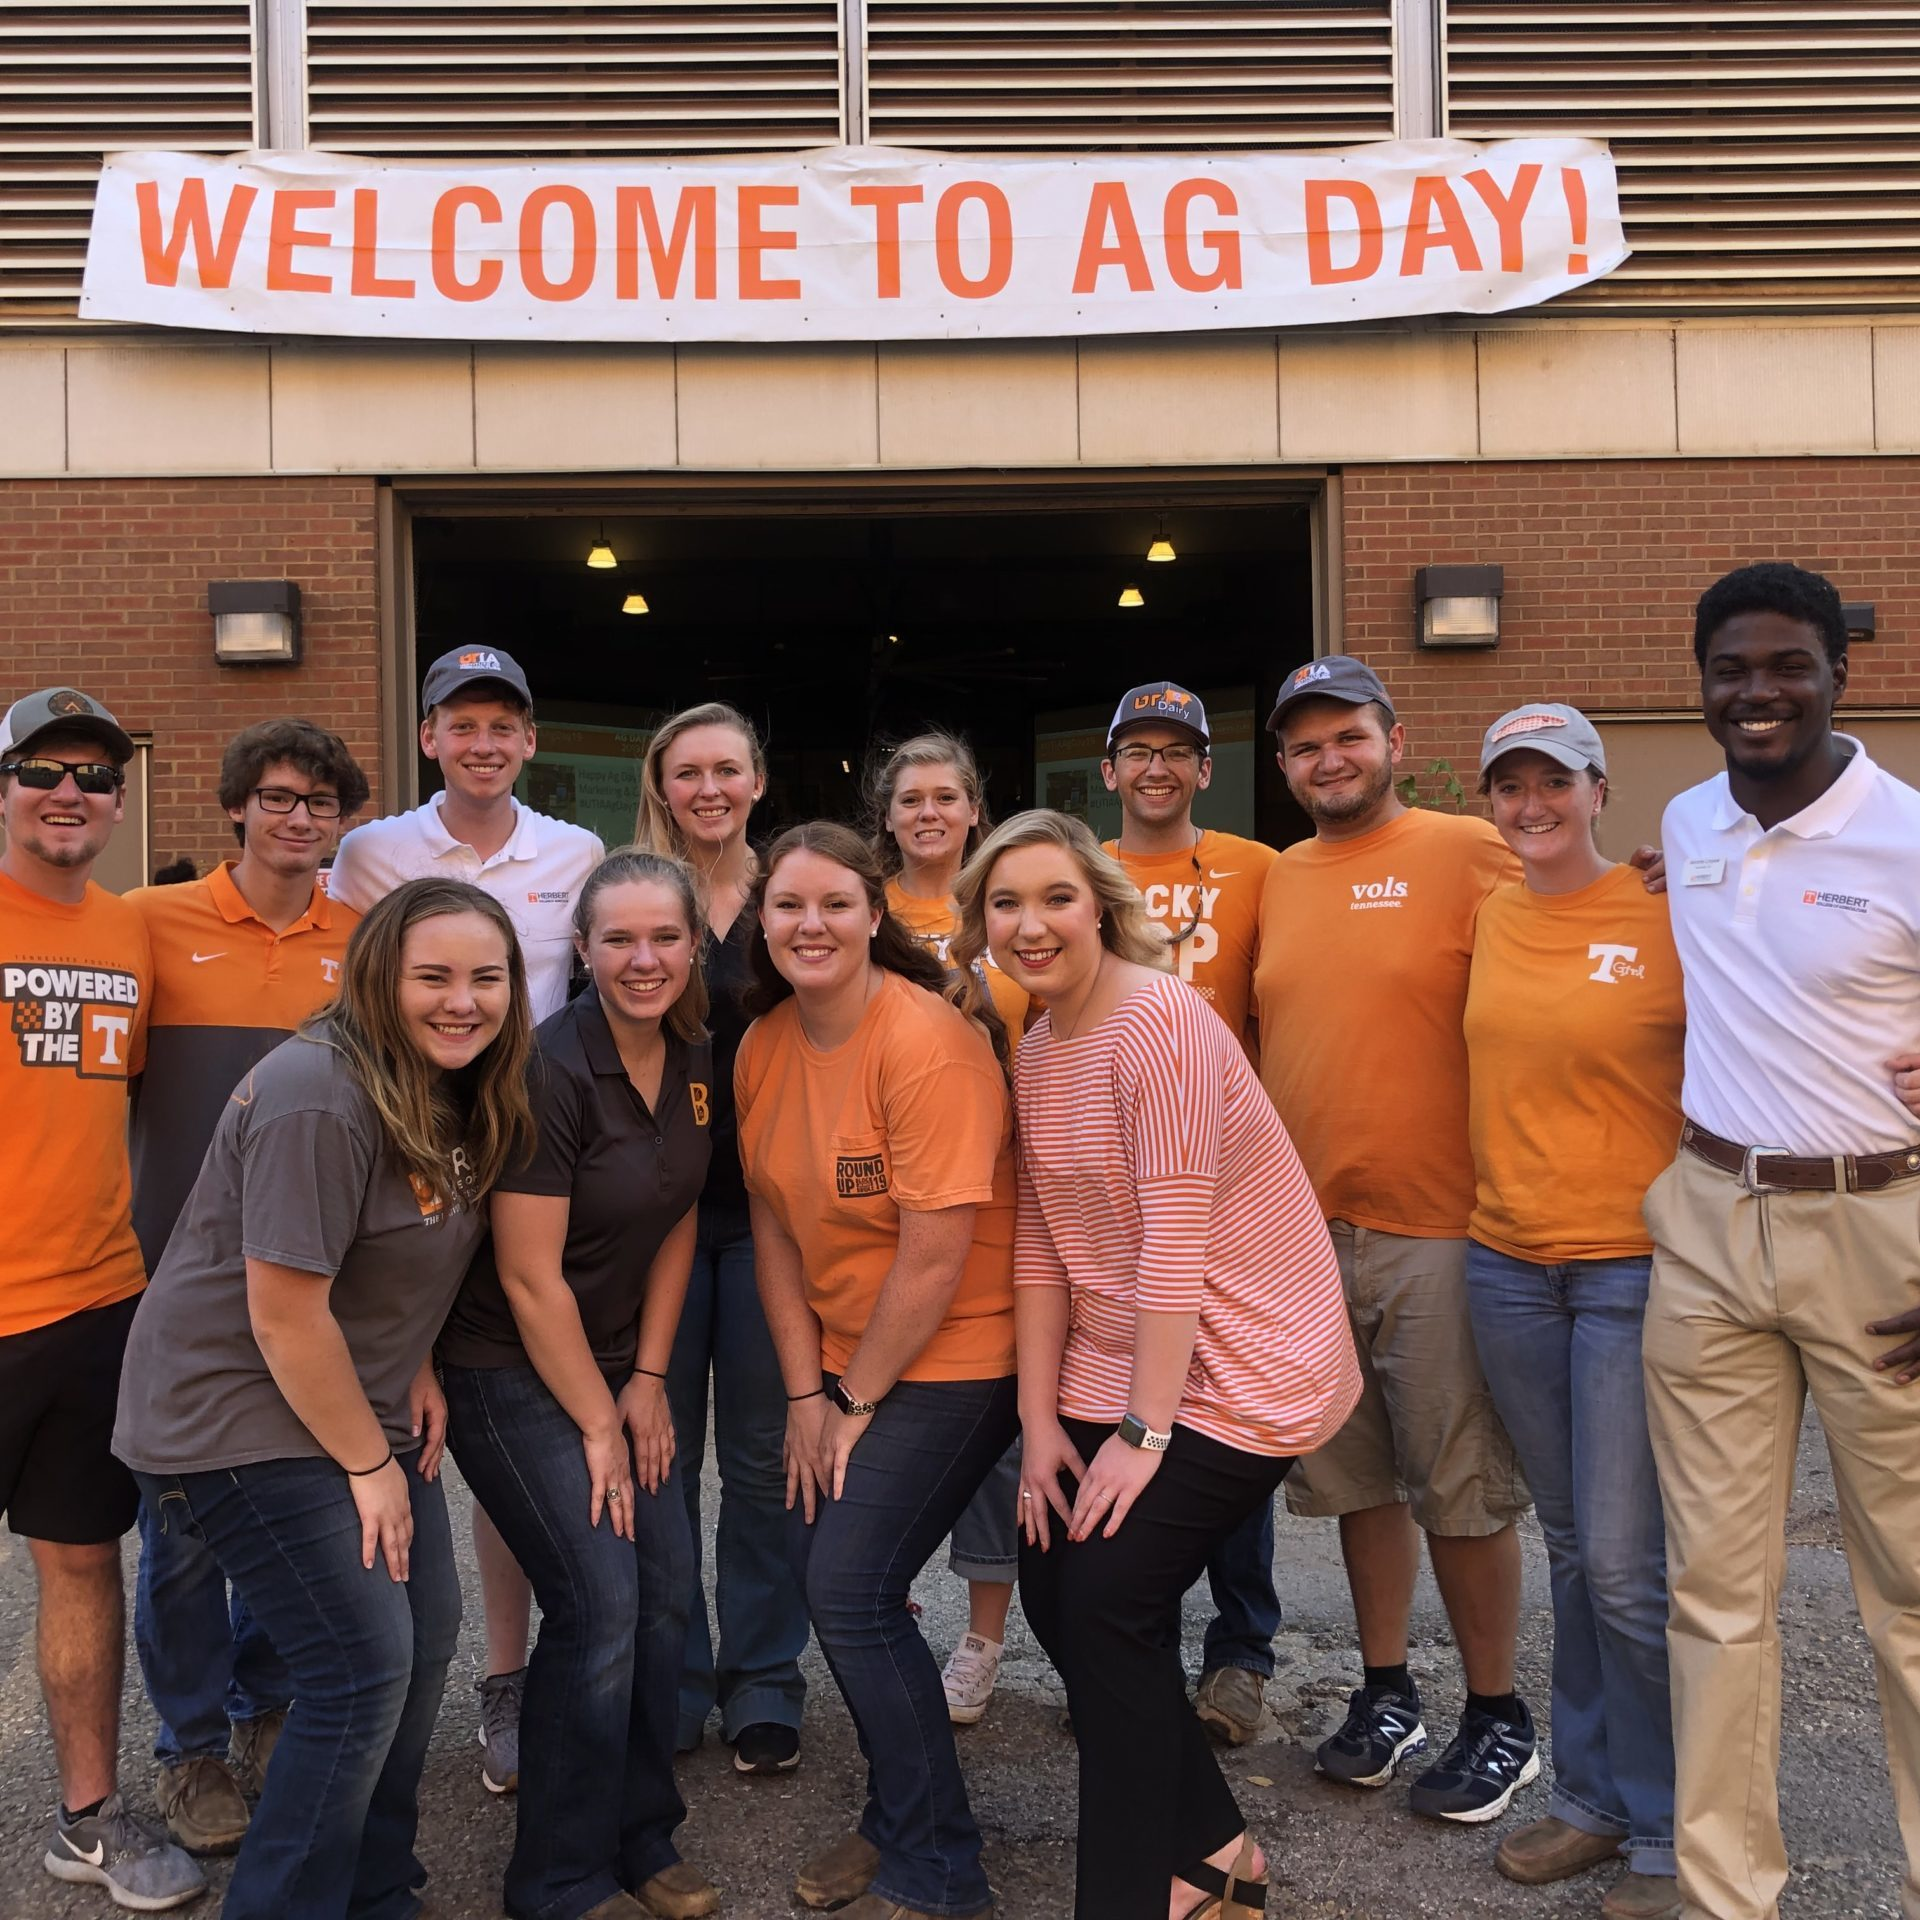 Students gather outside of Ag Day event